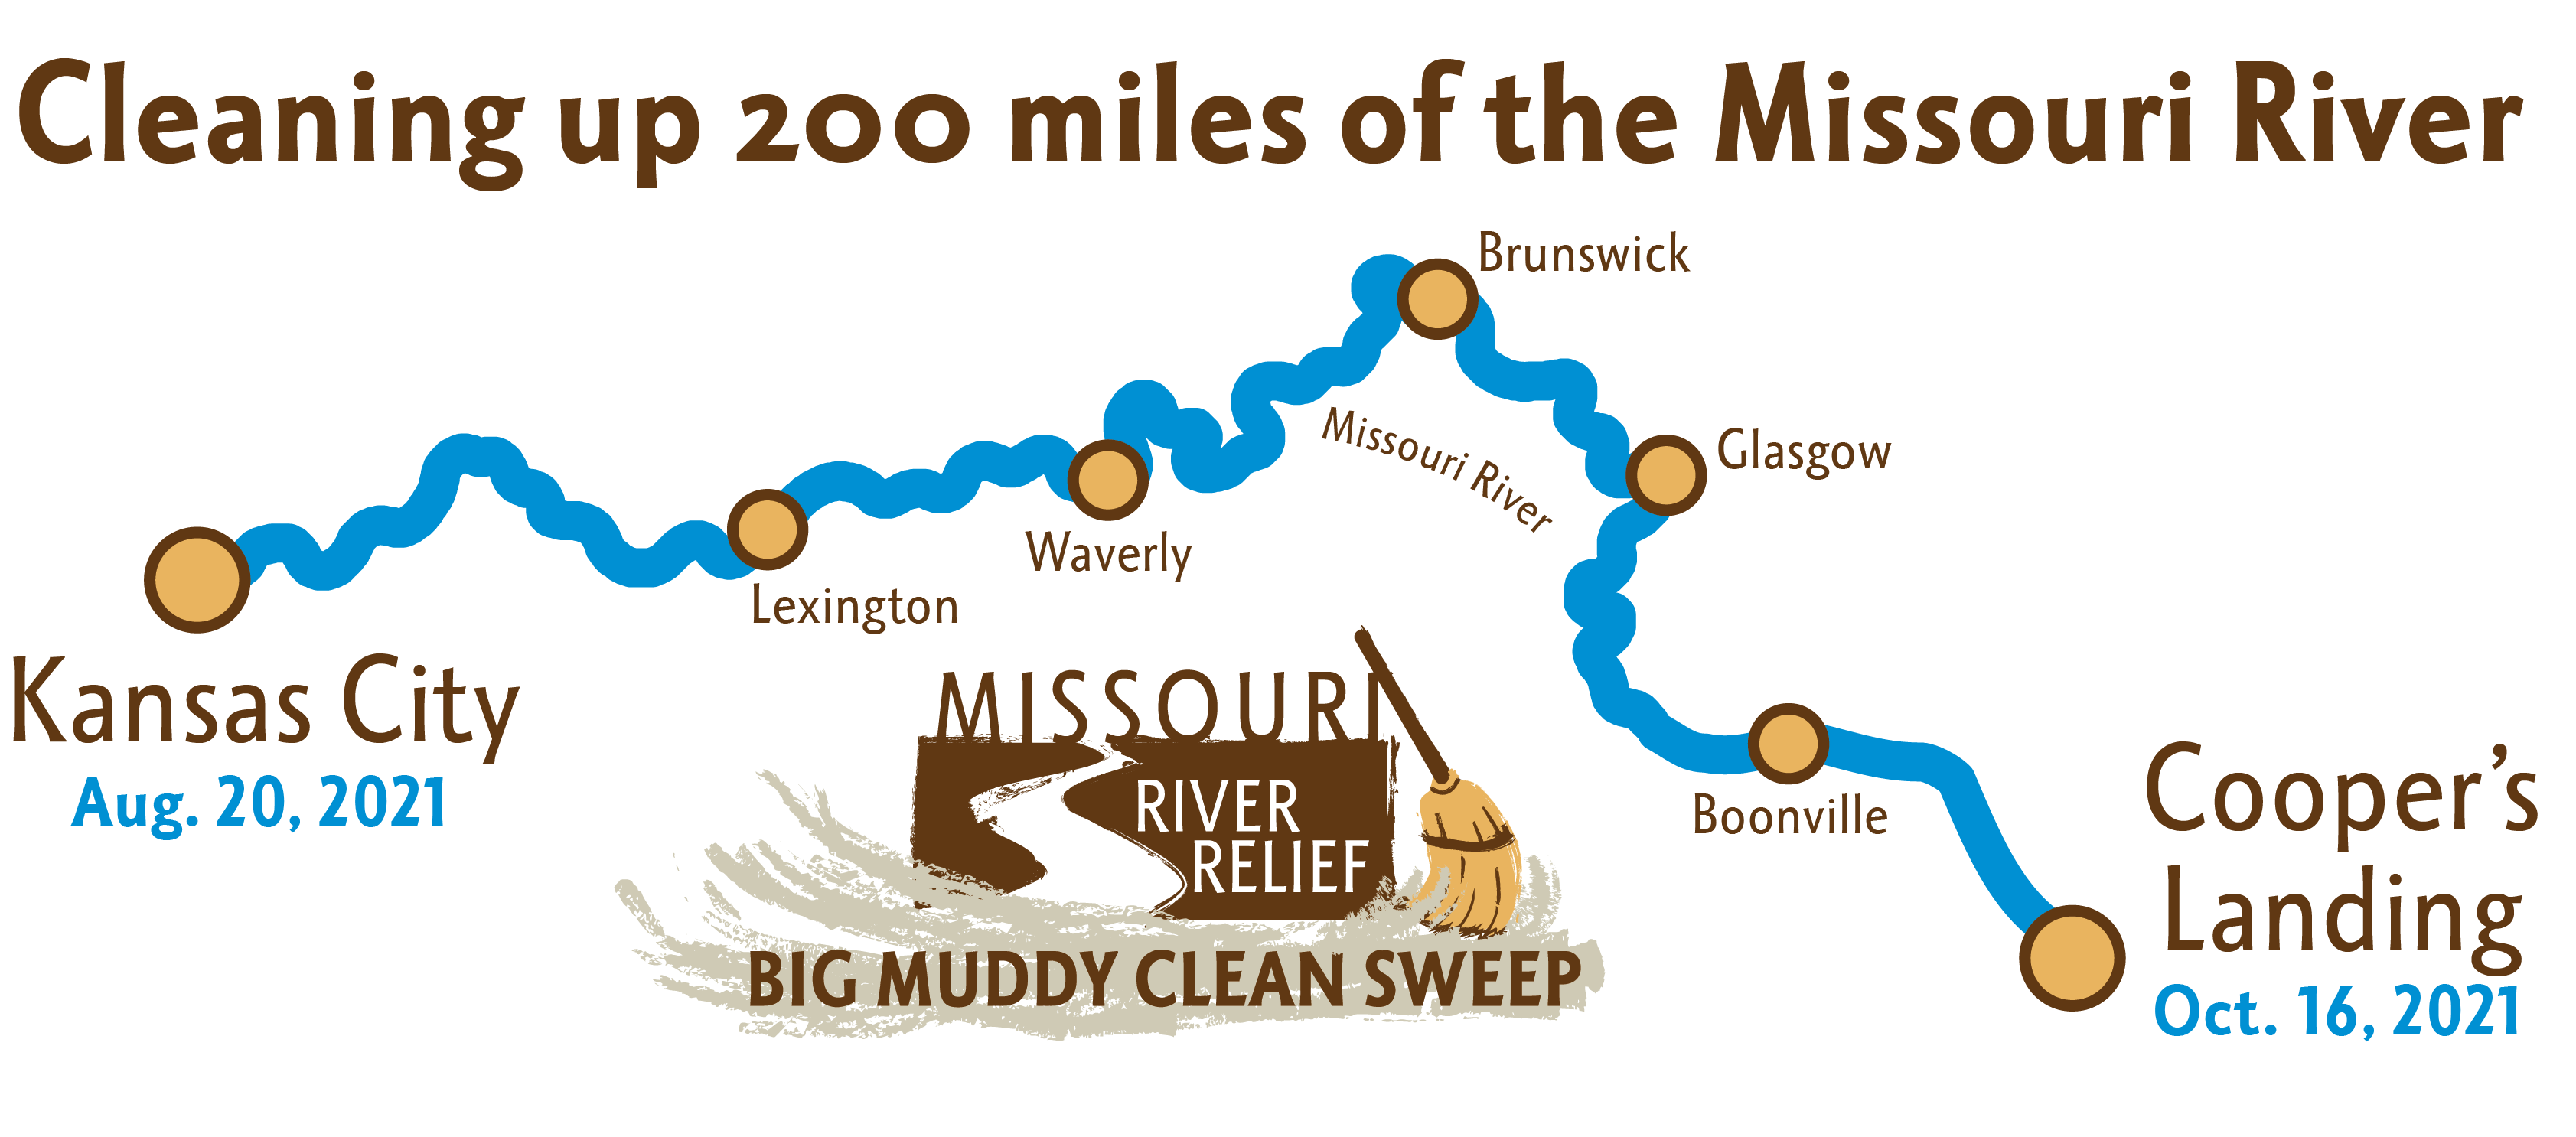 Cleaning up 200 miles of the Missouri River during Missouri River Relief's Big Muddy Clean Sweep